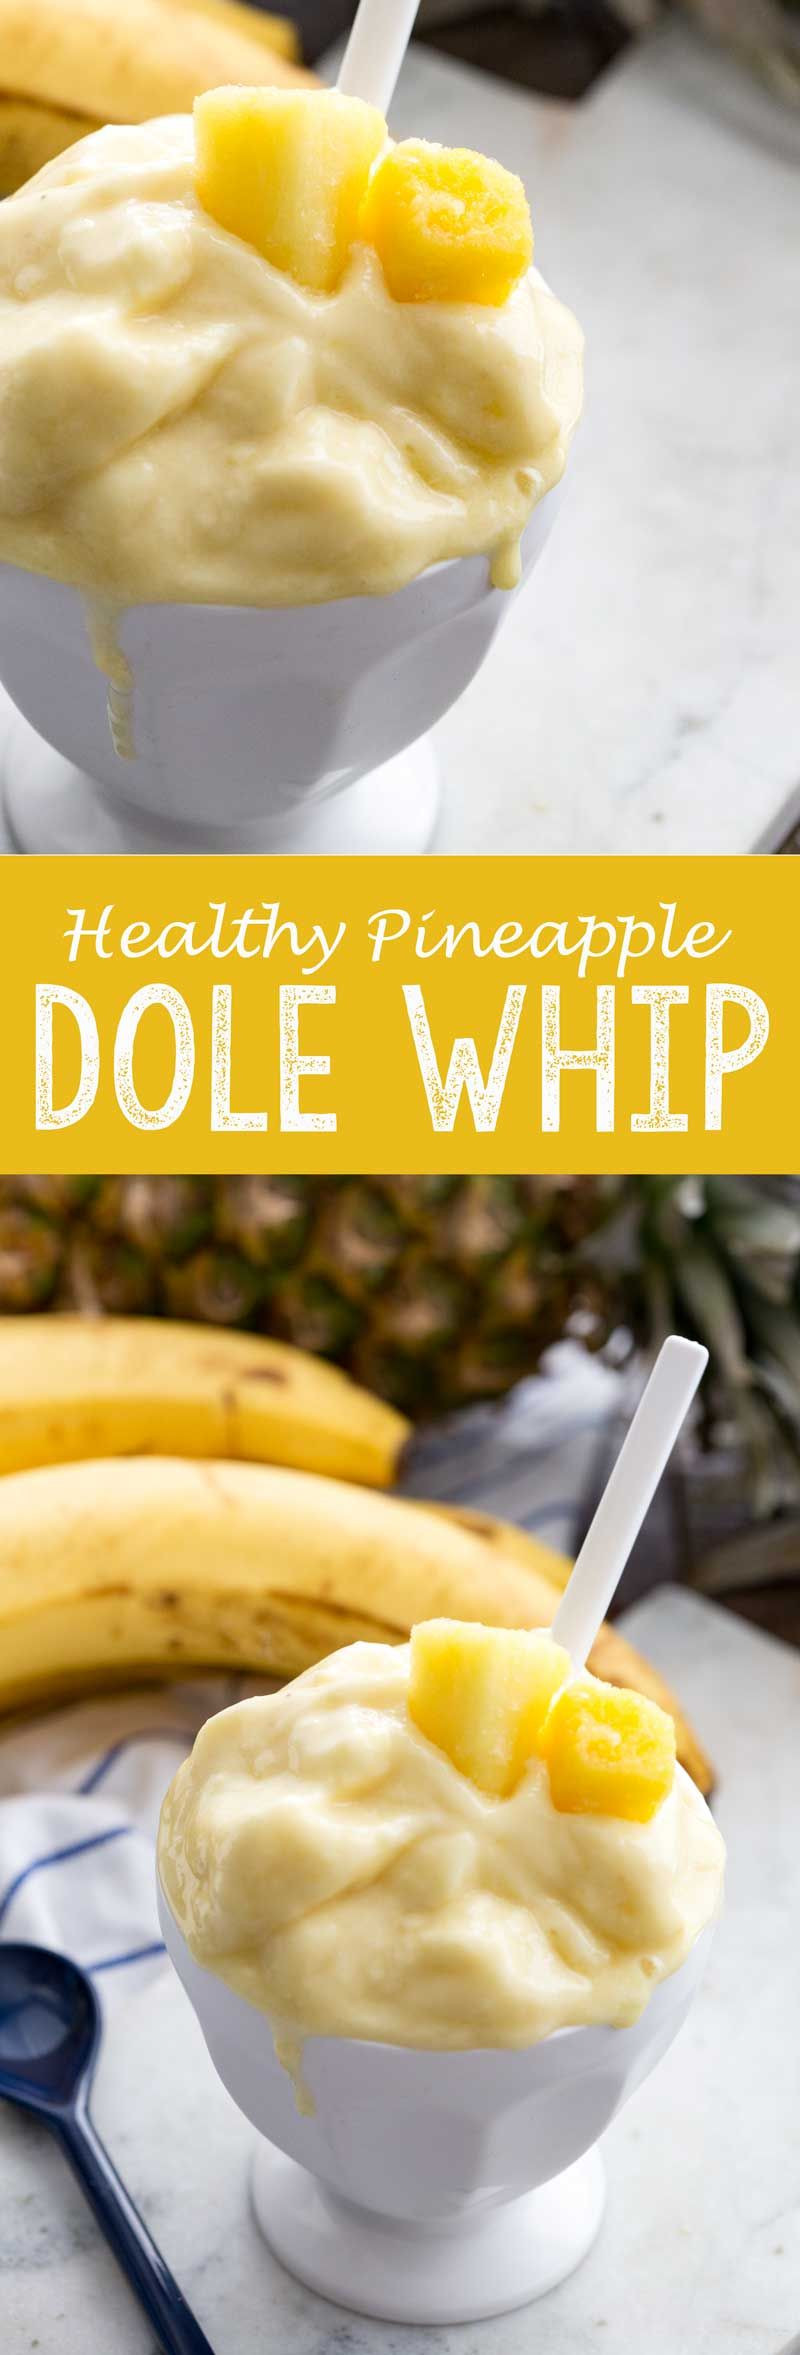 Healthy Pineapple Desserts  Healthy Pineapple Dole Whip